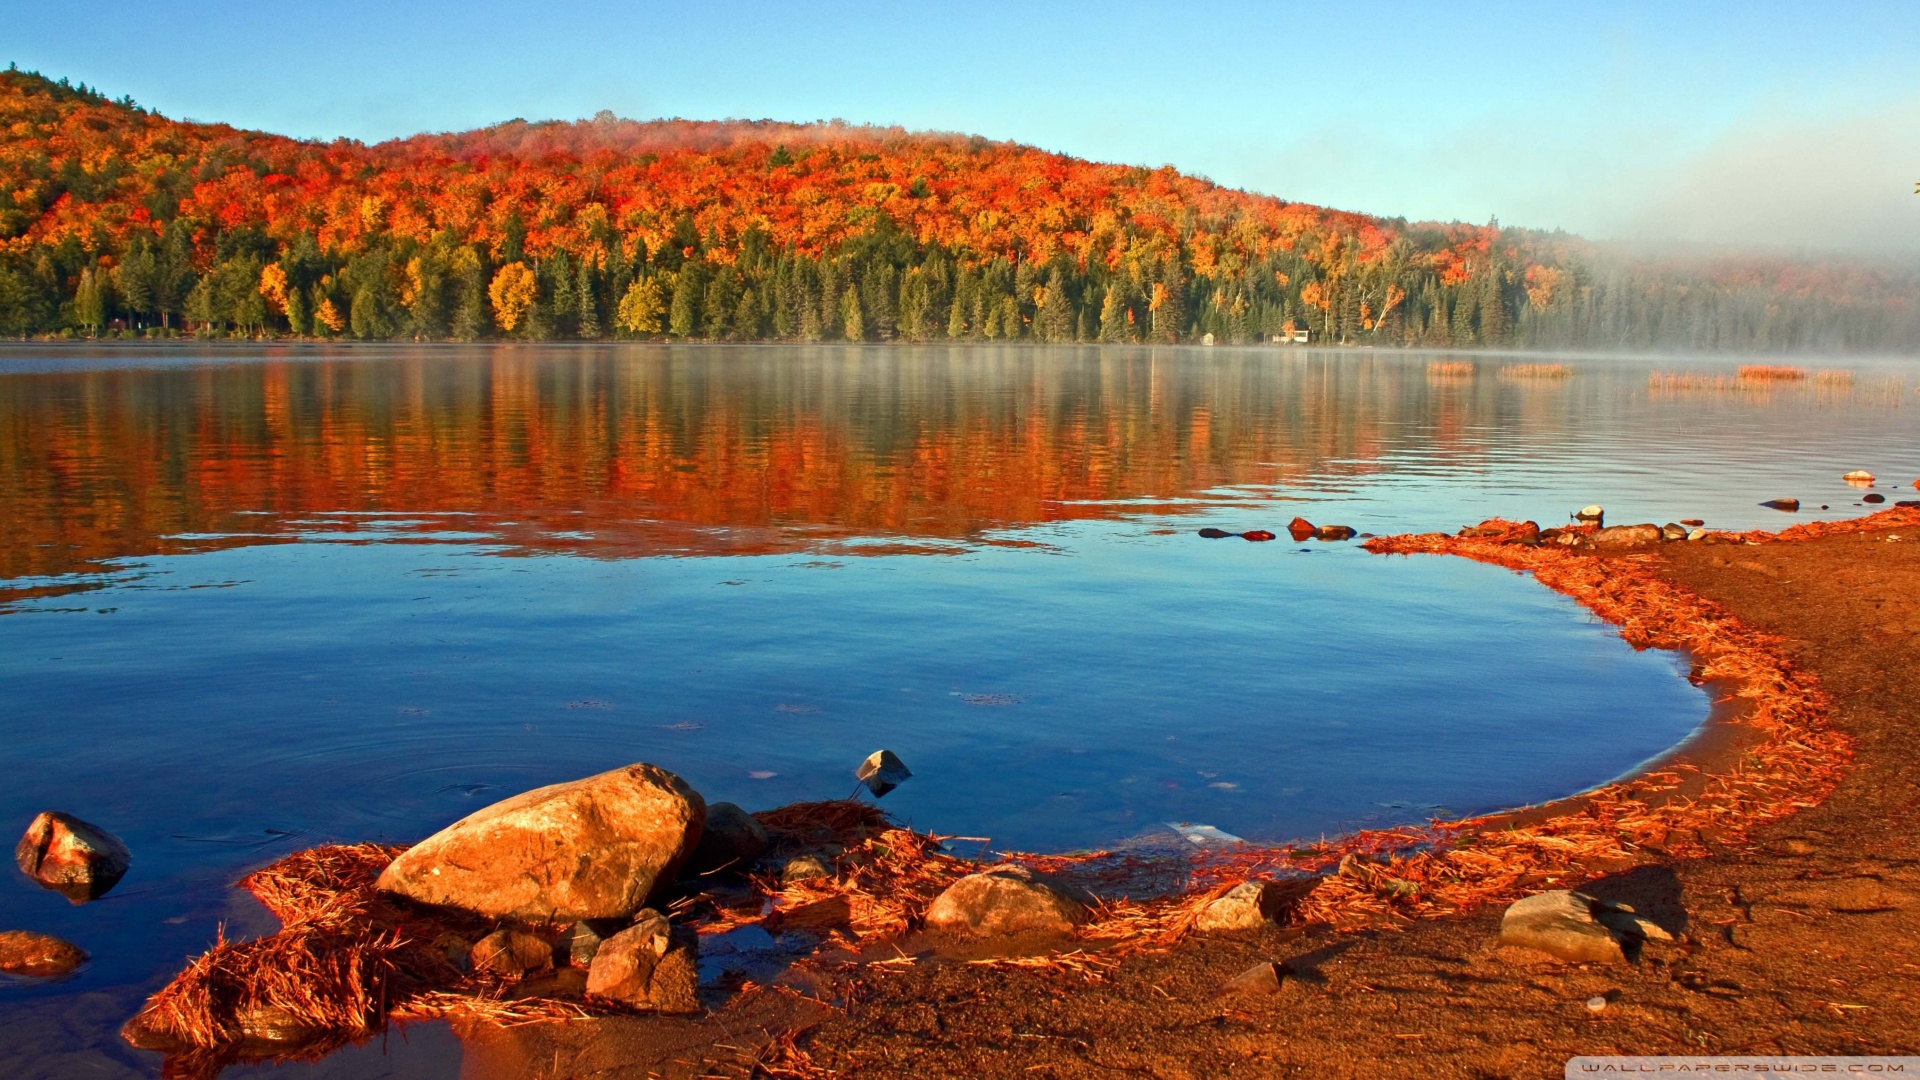 Lake shore in the fall